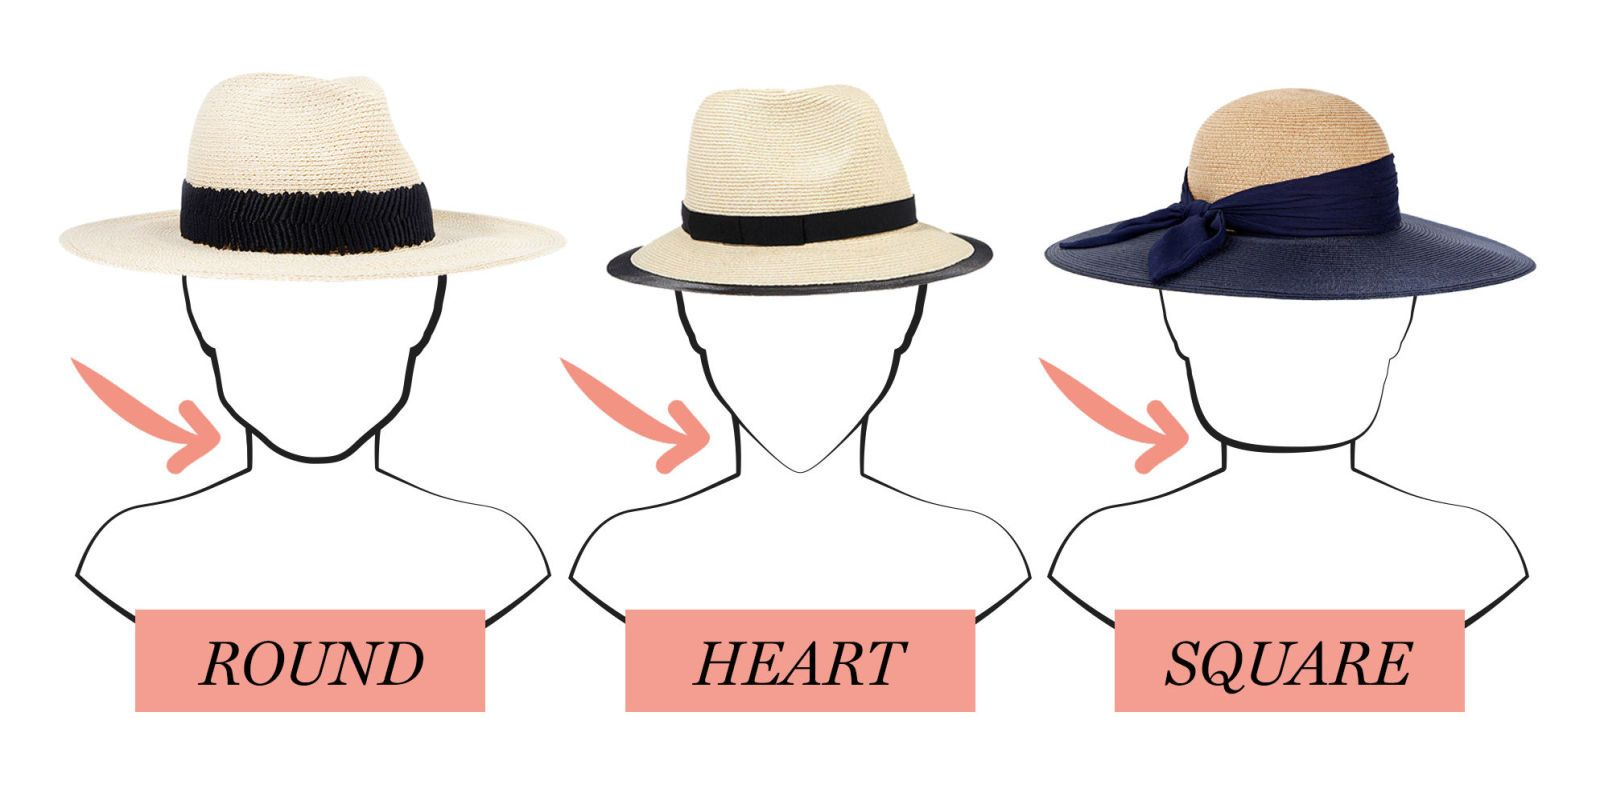 The Most Flattering Hat for Your Face Shape